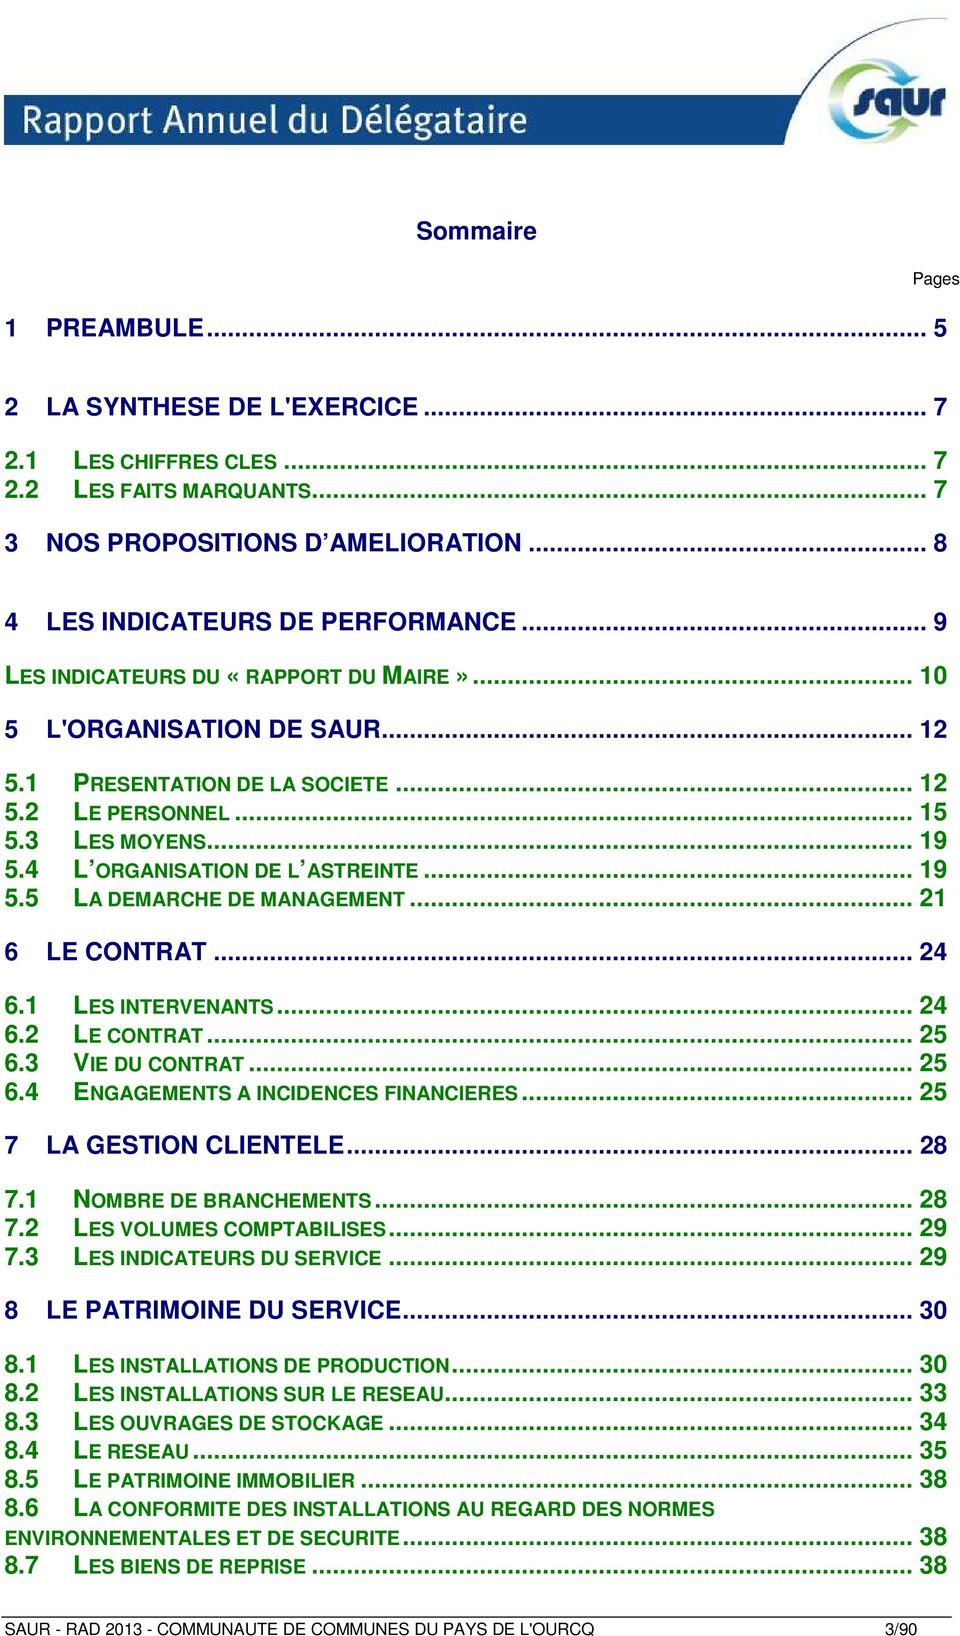 .. 19 5.5 LA DEMARCHE DE MANAGEMENT... 21 6 LE CONTRAT... 24 6.1 LES INTERVENANTS... 24 6.2 LE CONTRAT... 25 6.3 VIE DU CONTRAT... 25 6.4 ENGAGEMENTS A INCIDENCES FINANCIERES.